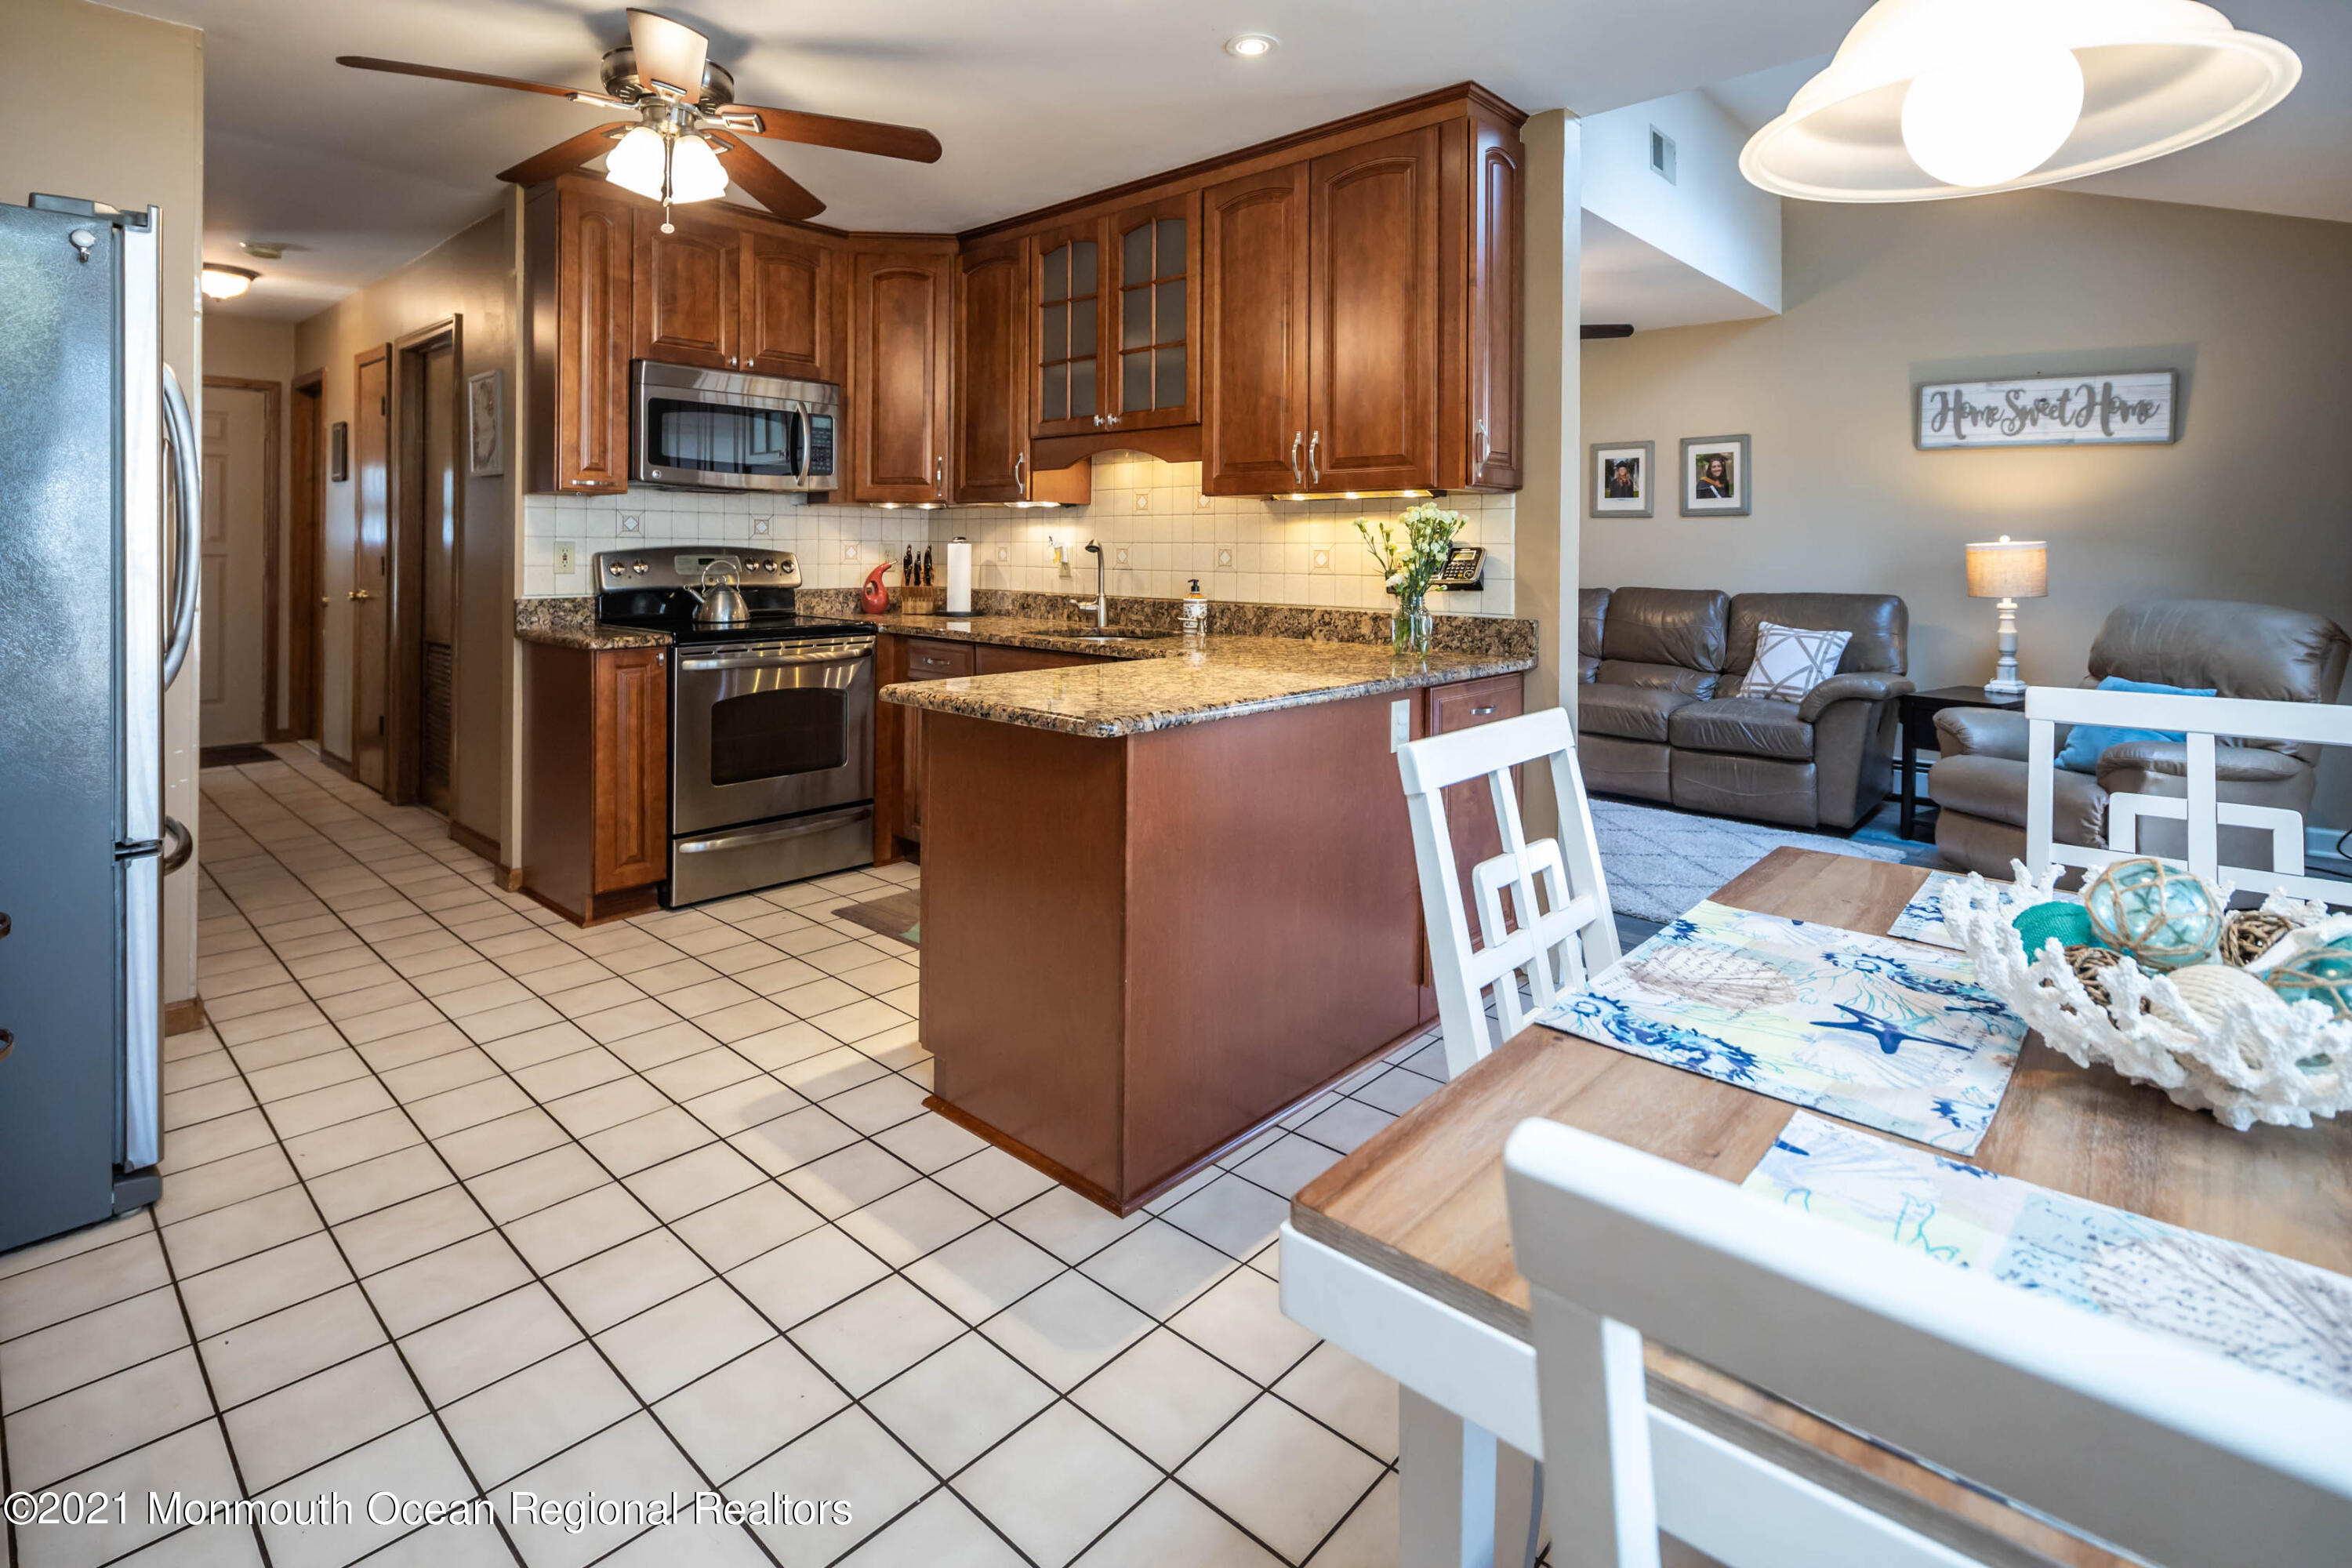 2105 Rogers Road, Point Pleasant, New Jersey 08742, 4 Bedrooms Bedrooms, ,3 BathroomsBathrooms,Single Family,For Sale,2105 Rogers Road,3,22110735